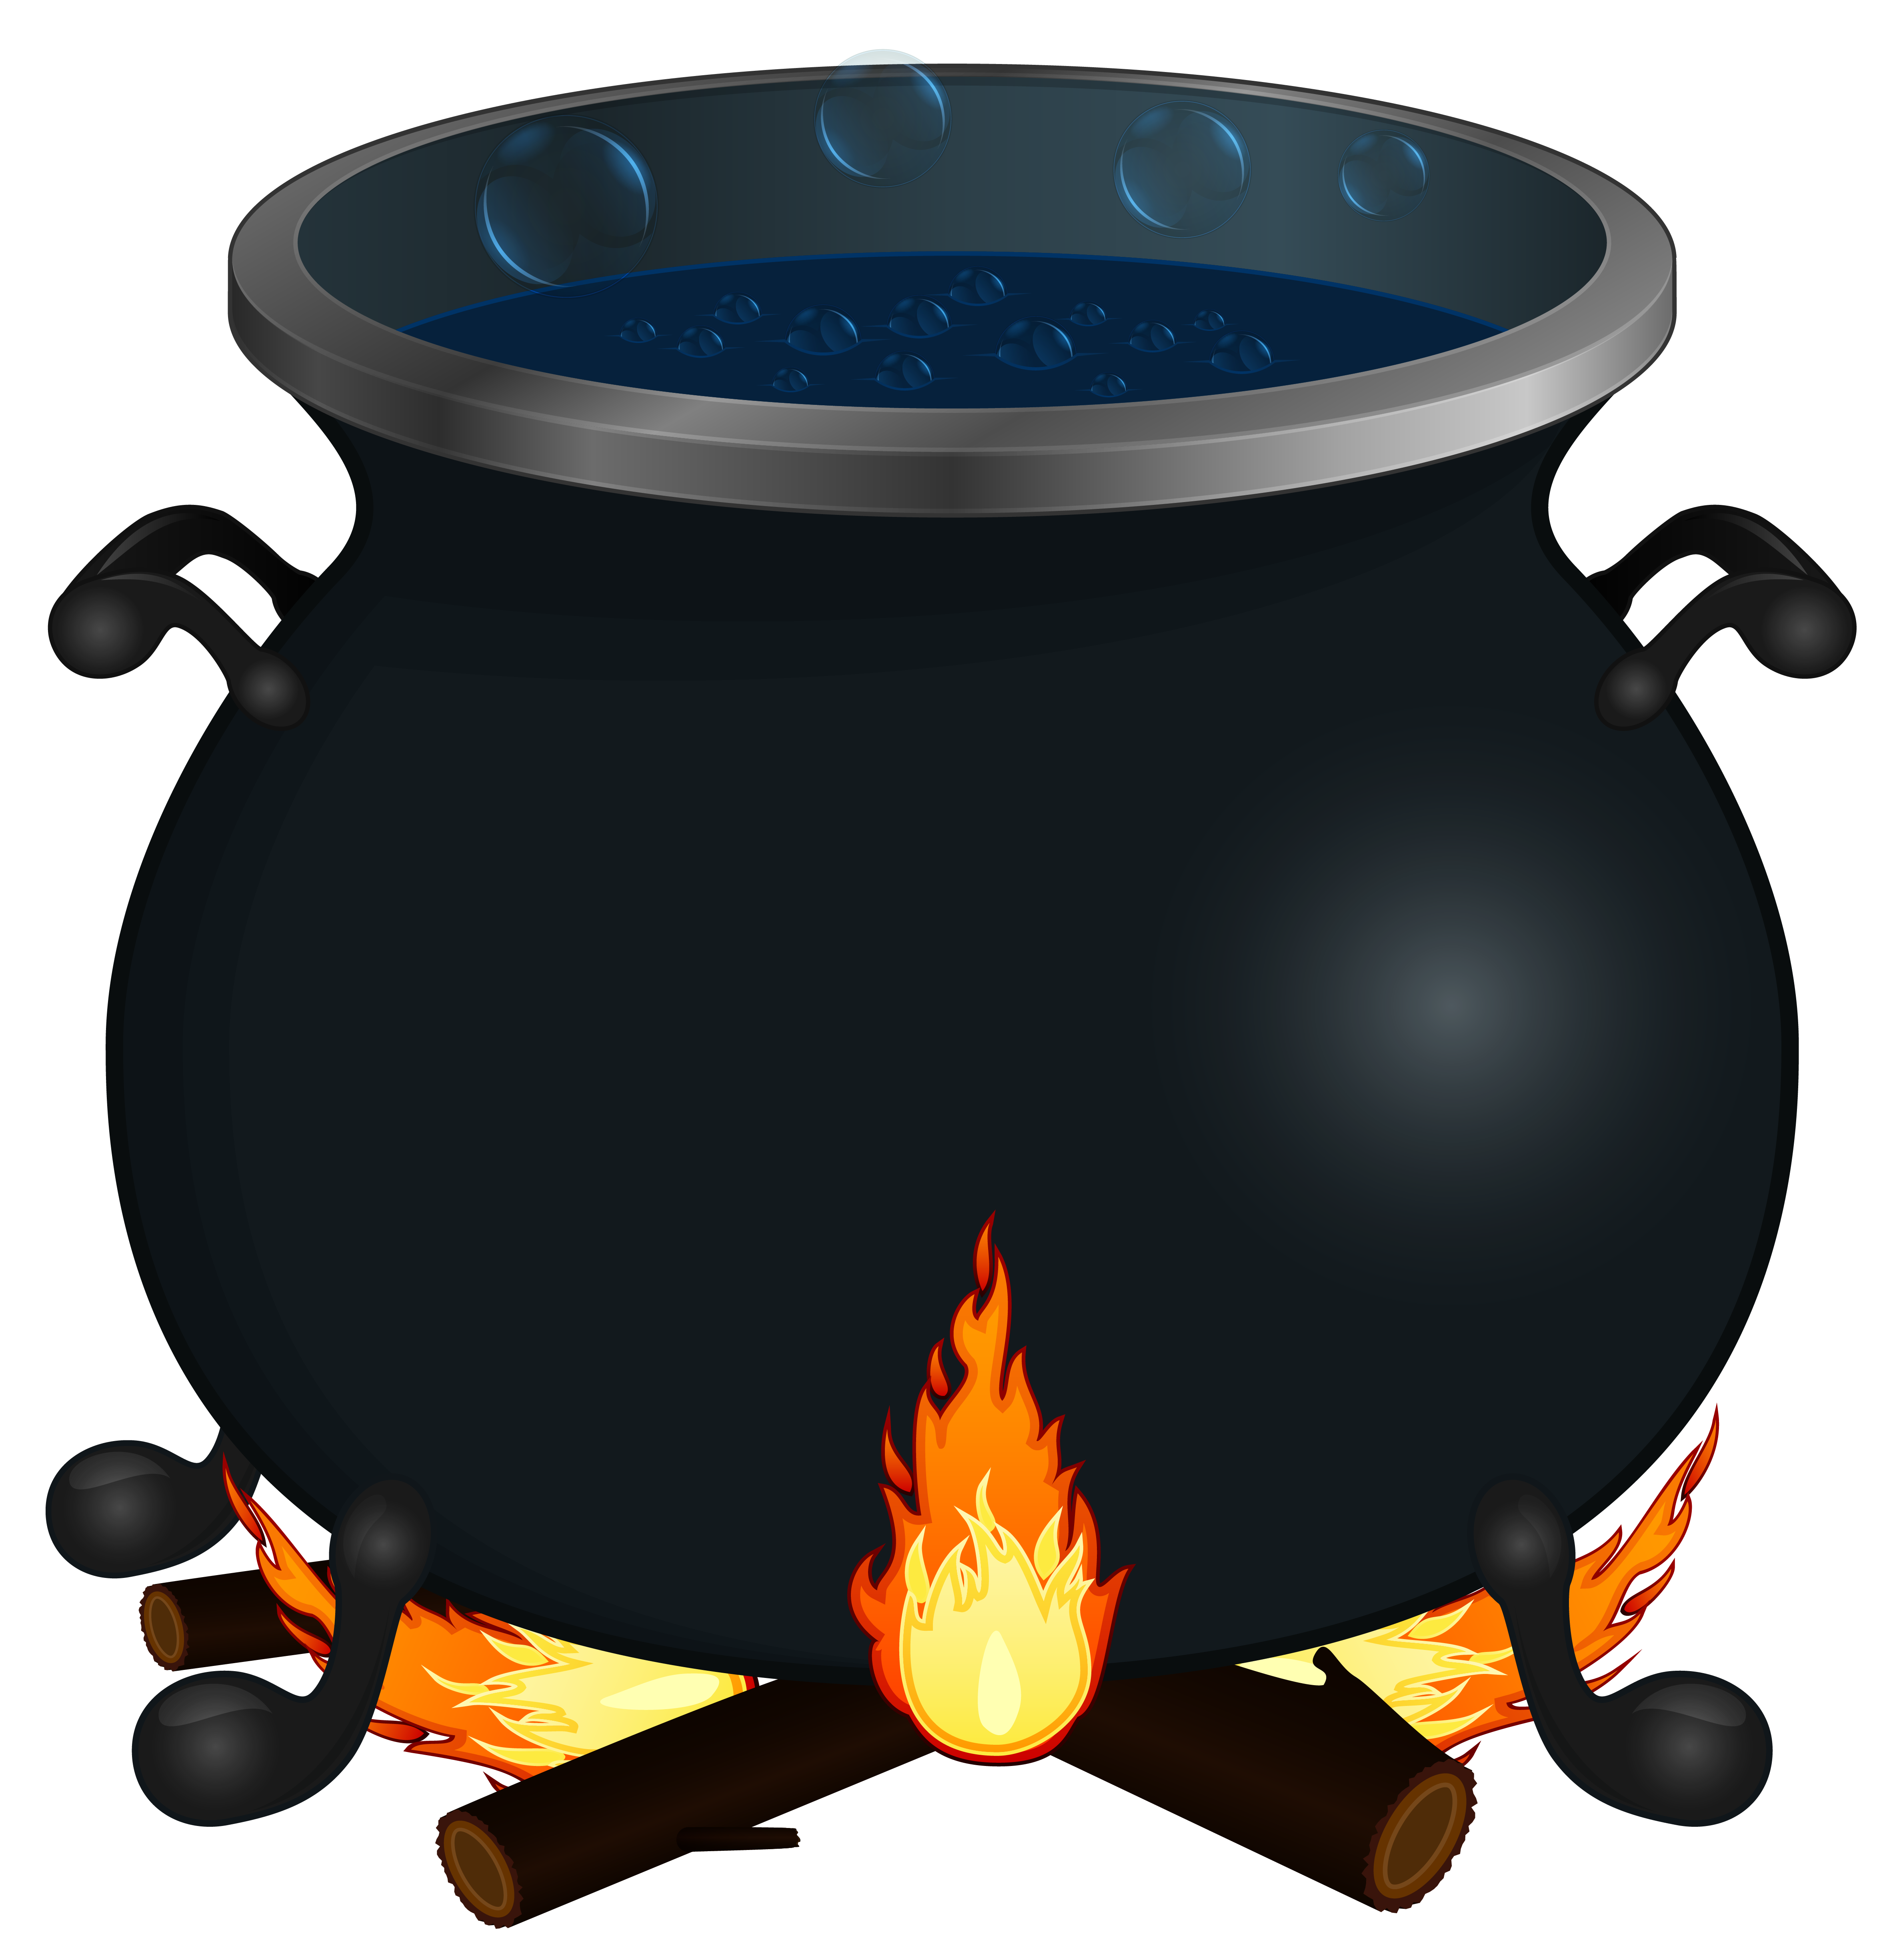 Cauldron clipart transparent background. Halloween png image gallery